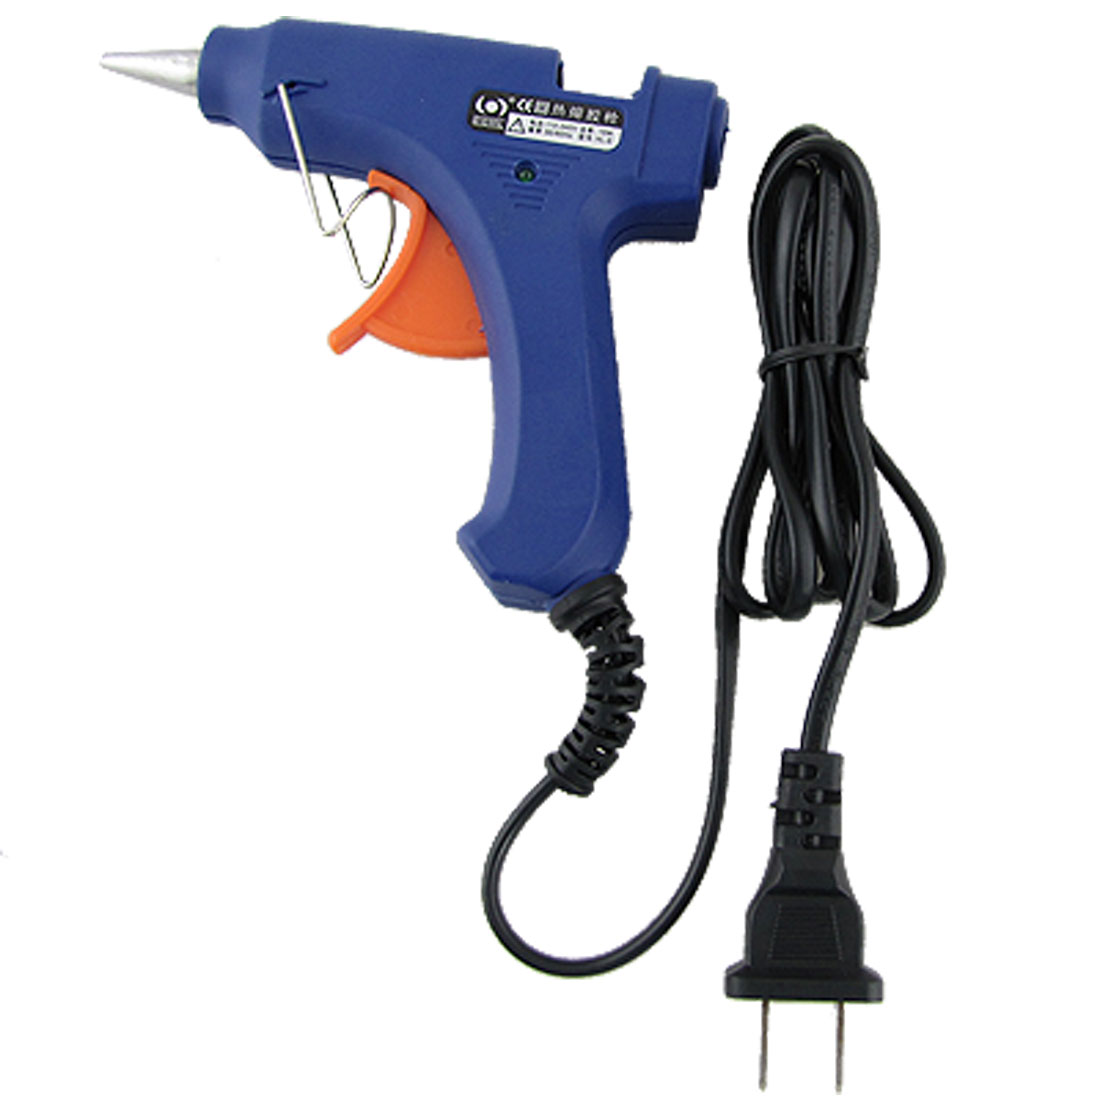 US Plug AC 110-240V 15W Heating Hot Melt Glue Gun Crafts Repair Tool